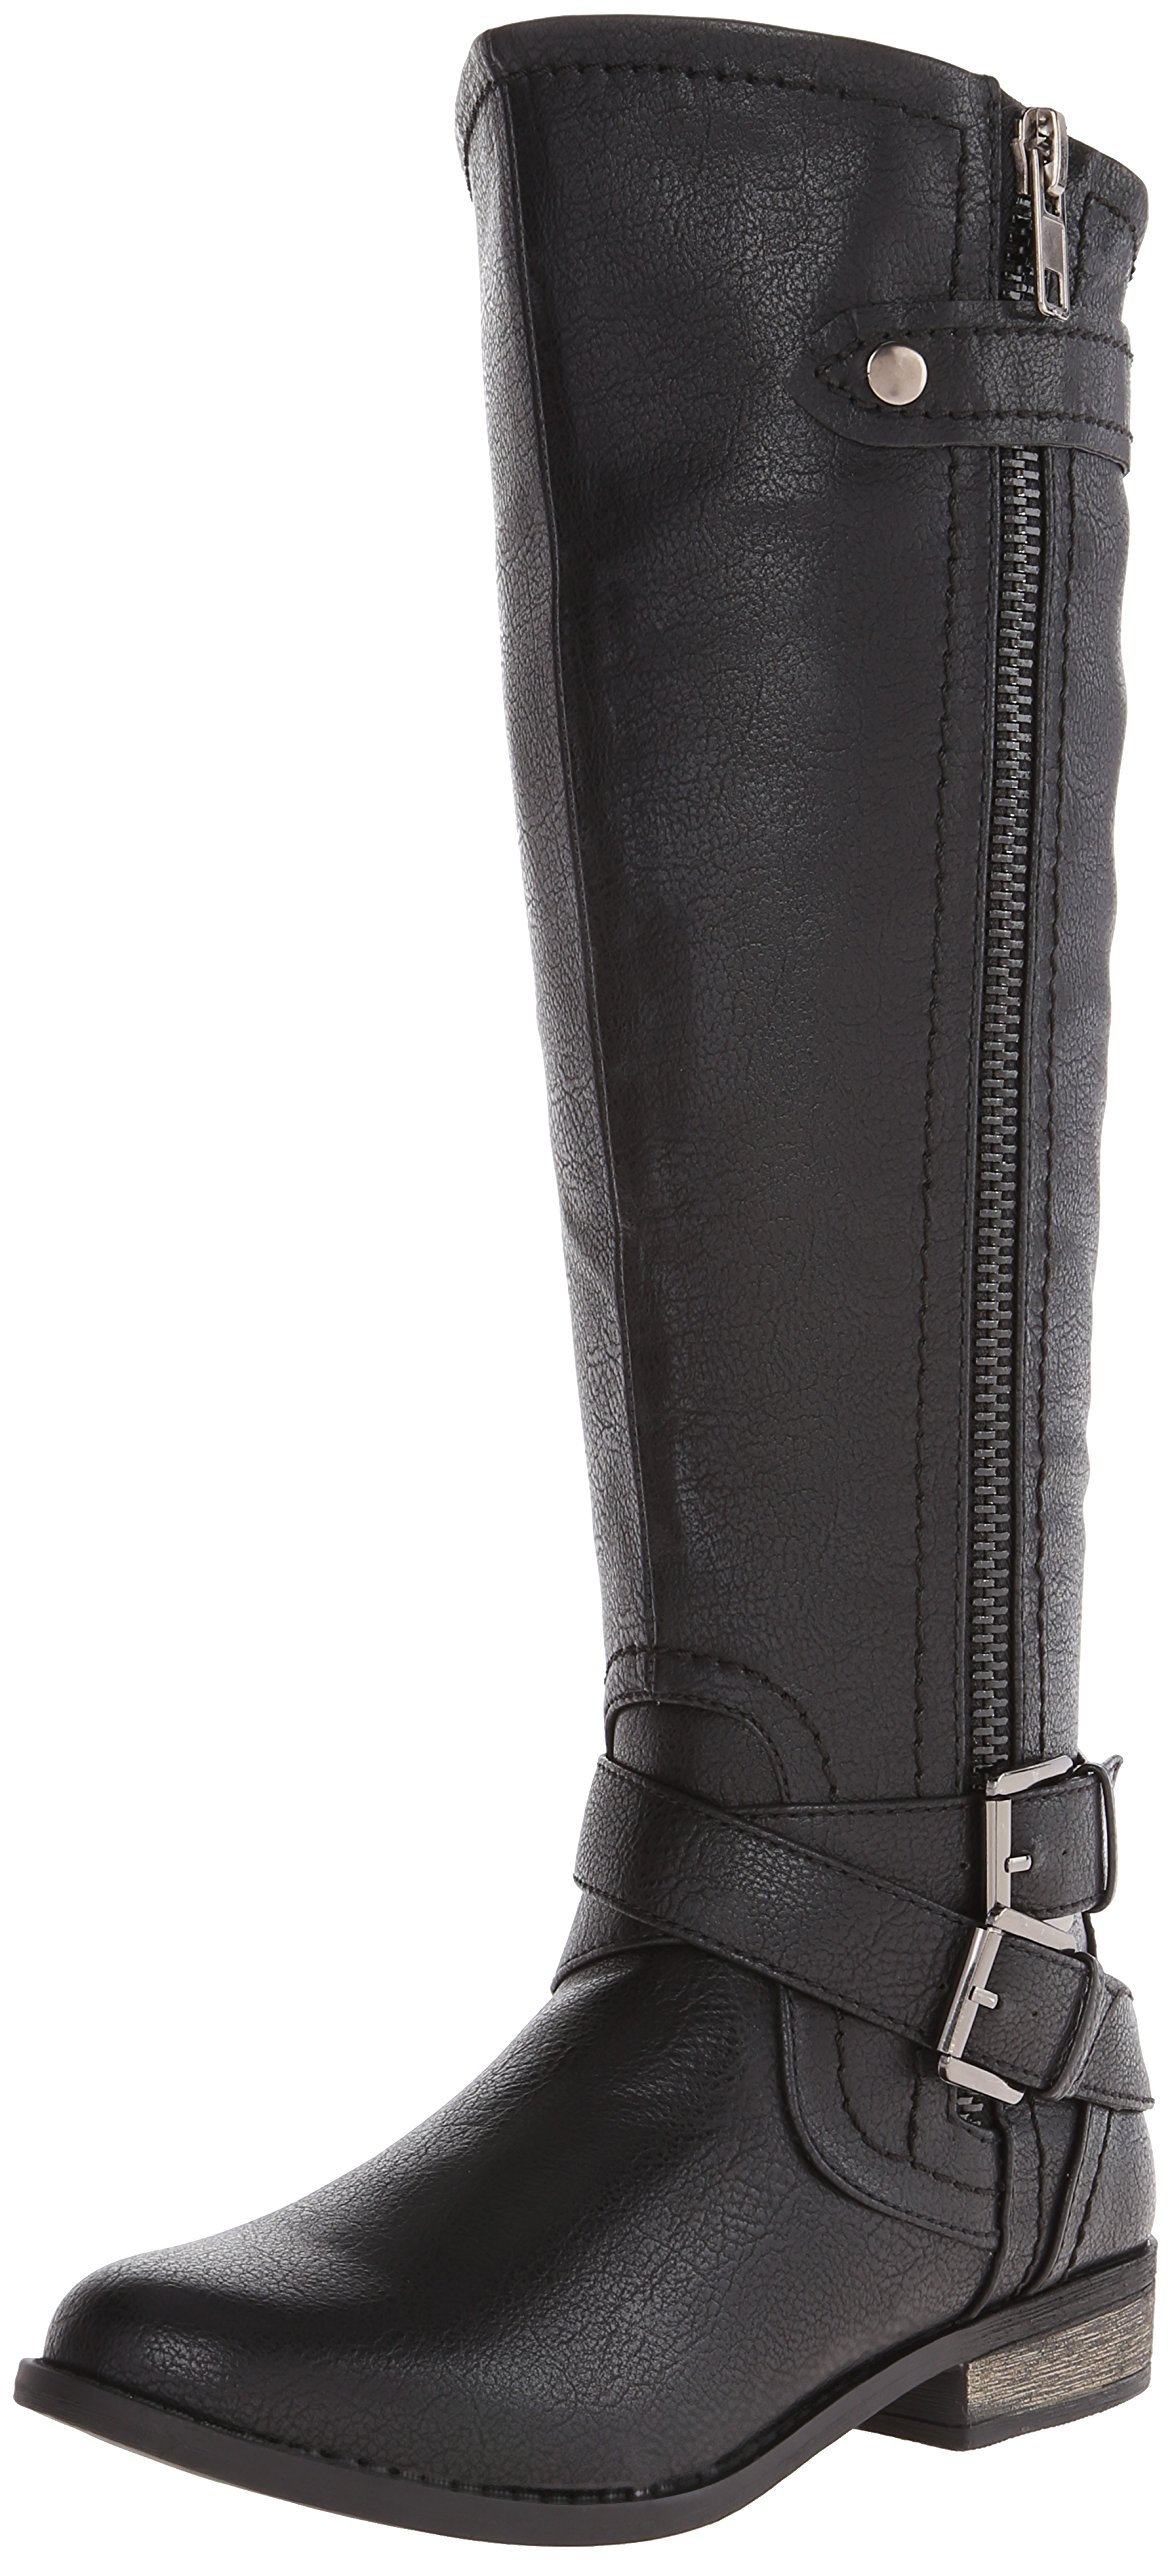 Rampage Women's Hansel Zipper and Buckle Knee-High Riding Boot,Black Smooth,7 B(M) US Regular Calf